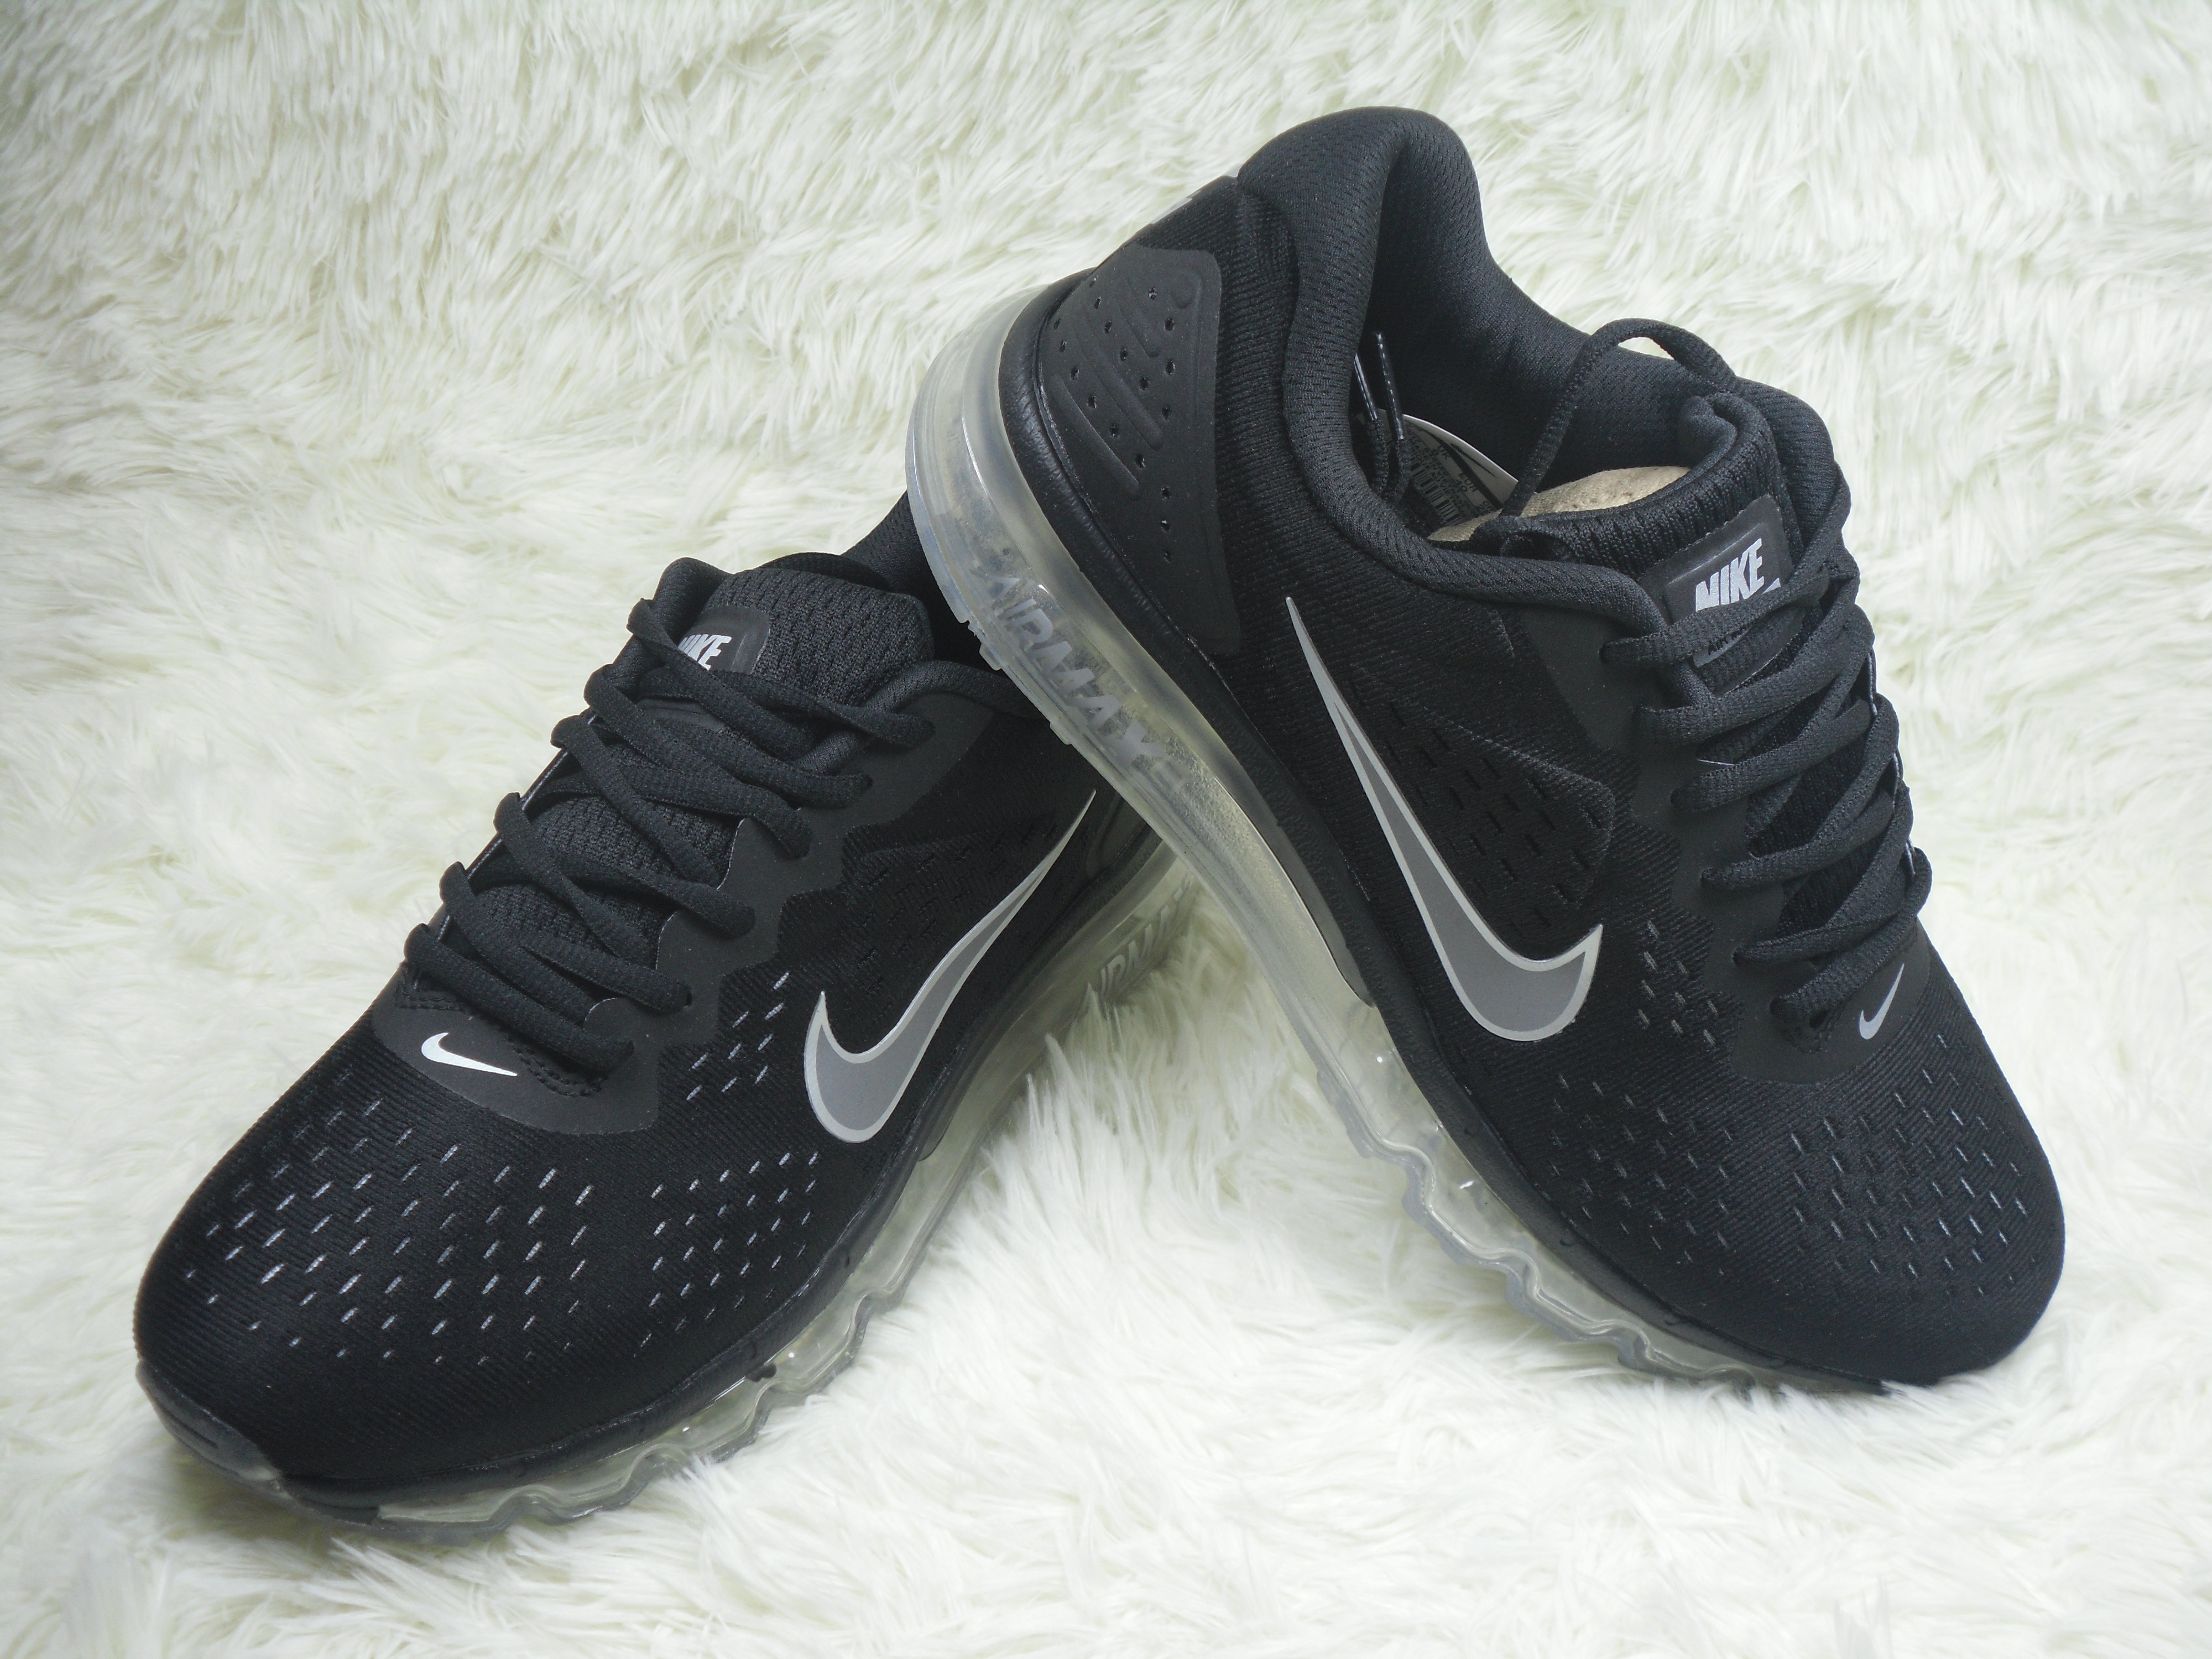 New Men Nike Air Max 2019 Black Grey Shoes